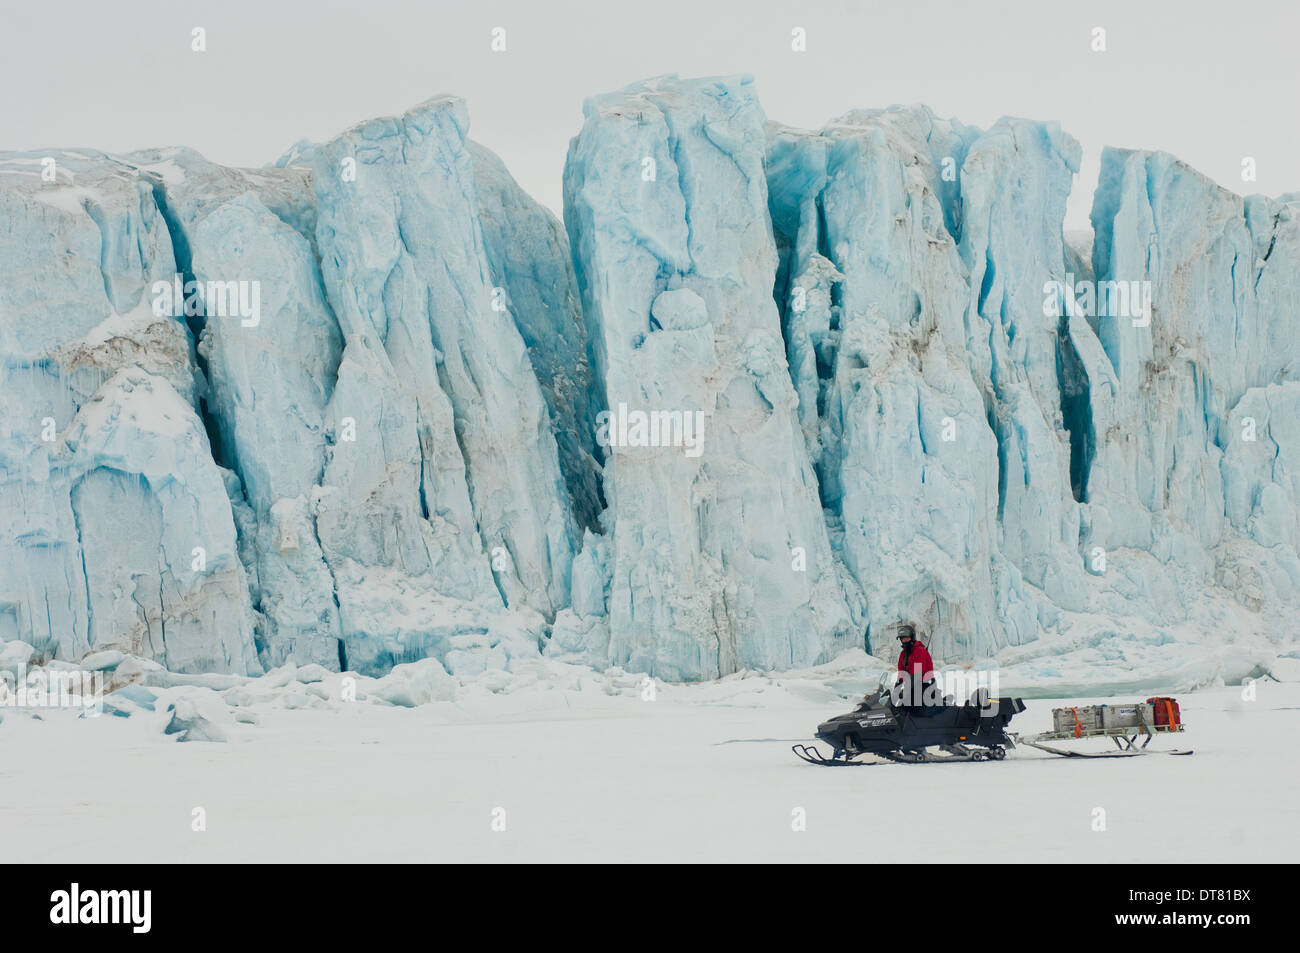 Arctic guide on a snowmobile in front of the Tuna Glacier (Tunabreen), Temple Fjord (Tempelfjorden), Spitsbergen, Svalbard Archipelago, Norway - Stock Image